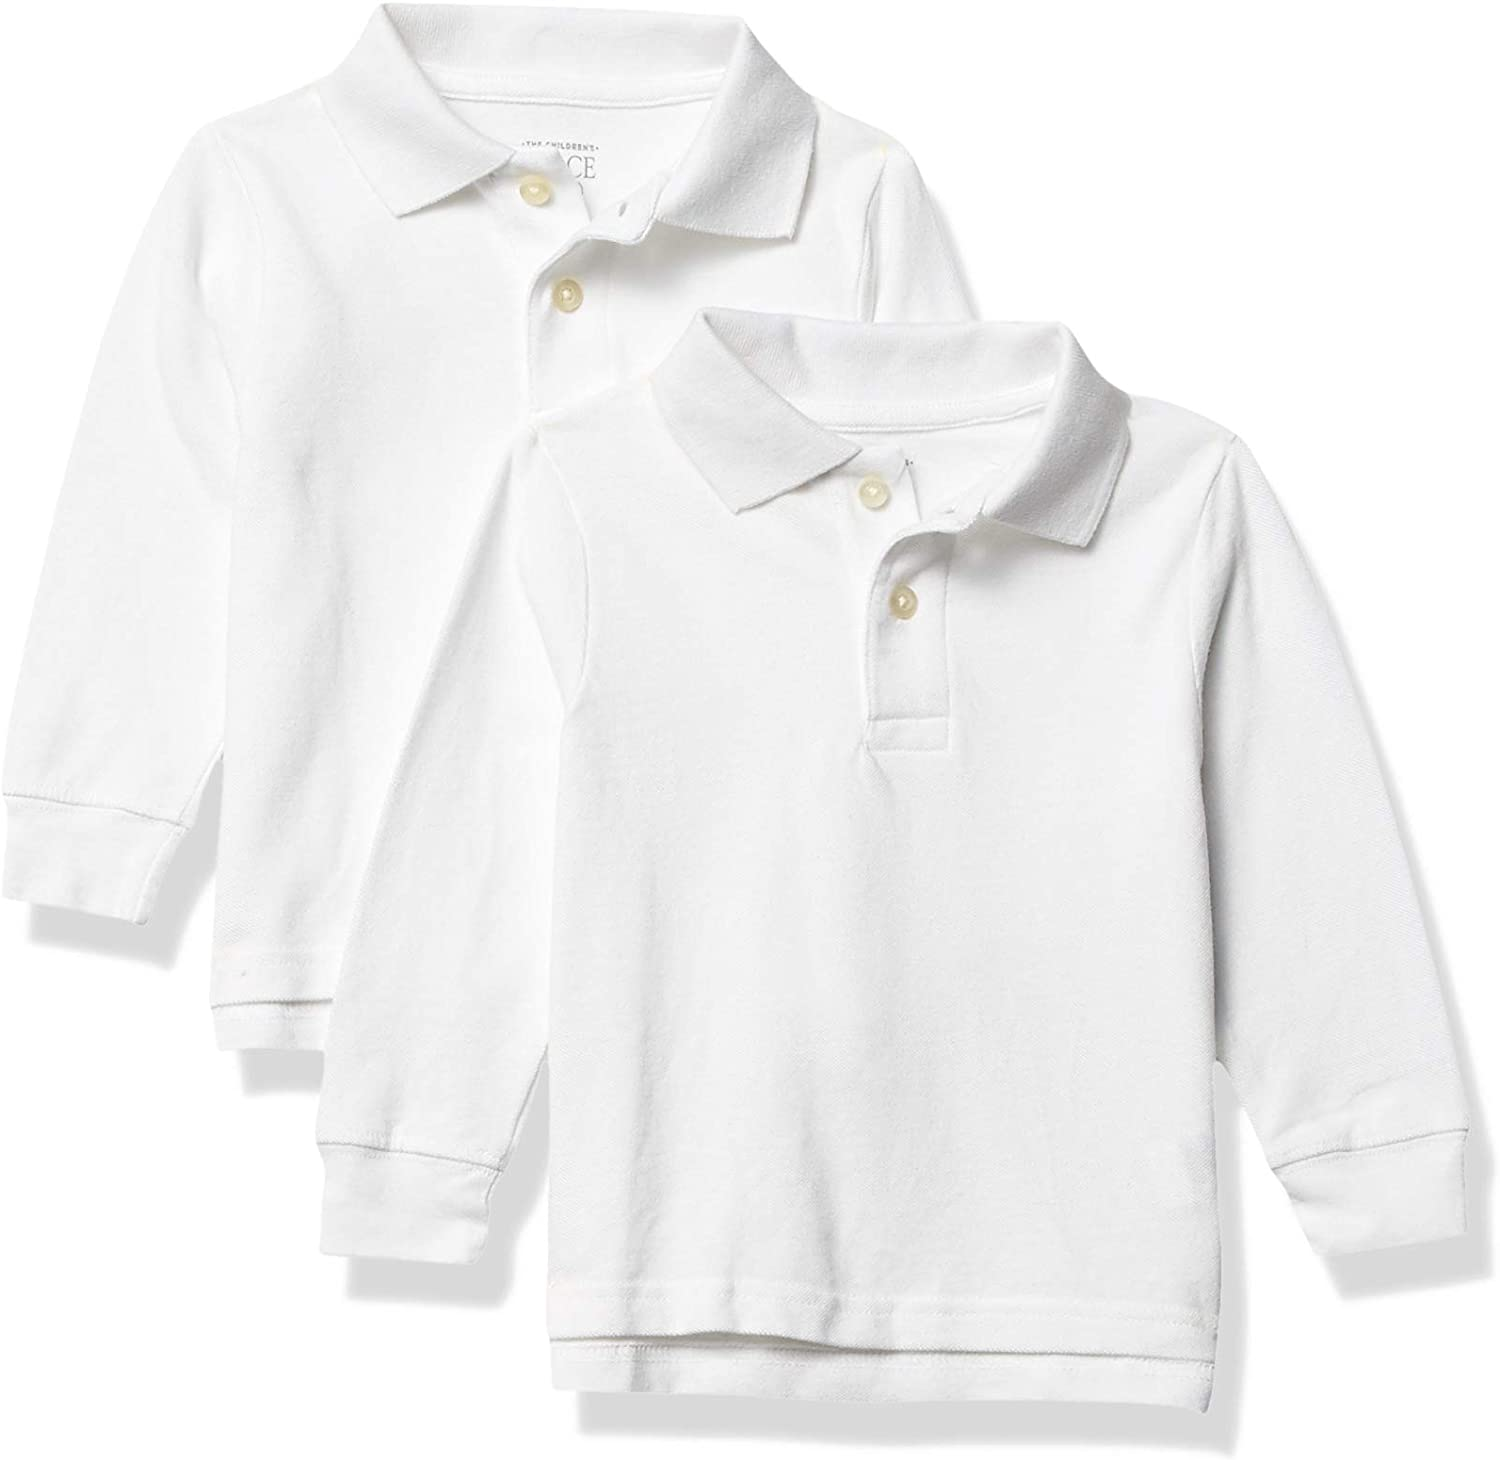 The Childrens Place Boys Baby and Toddler Uniform Long Sleeve Pique Polo 2-Pack